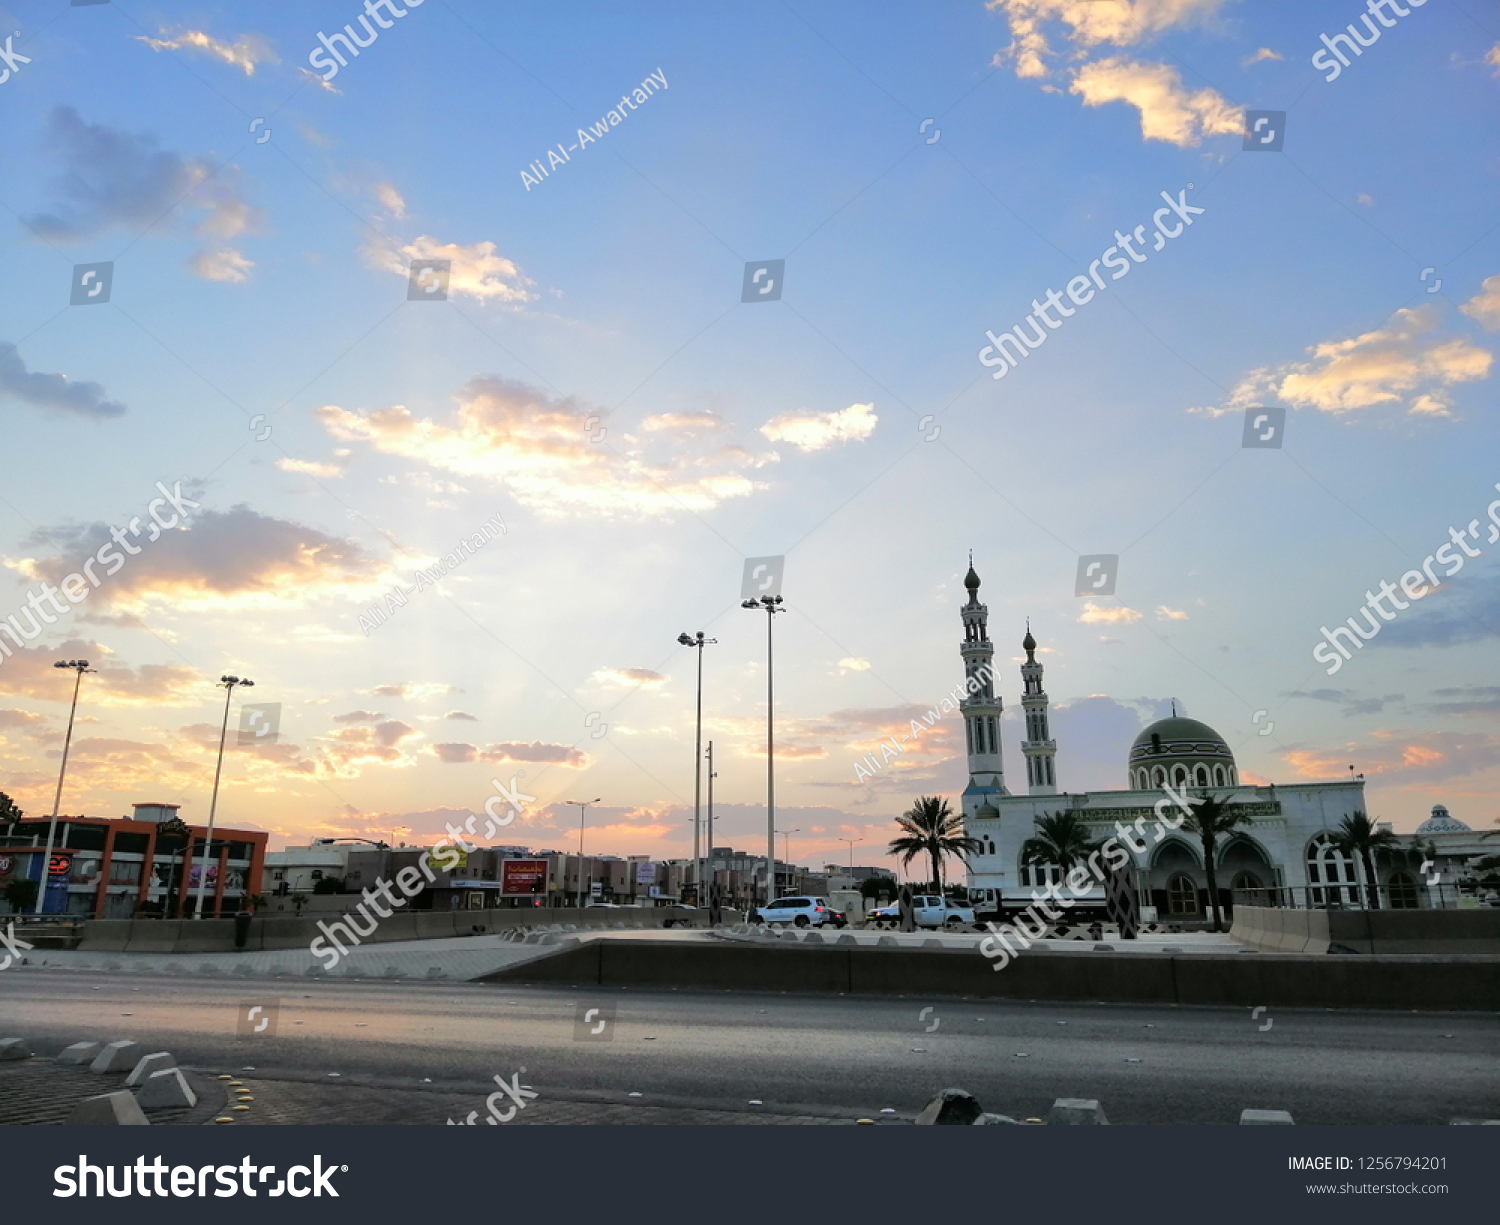 stock-photo-riyadh-saudi-arabia-ksa-dece